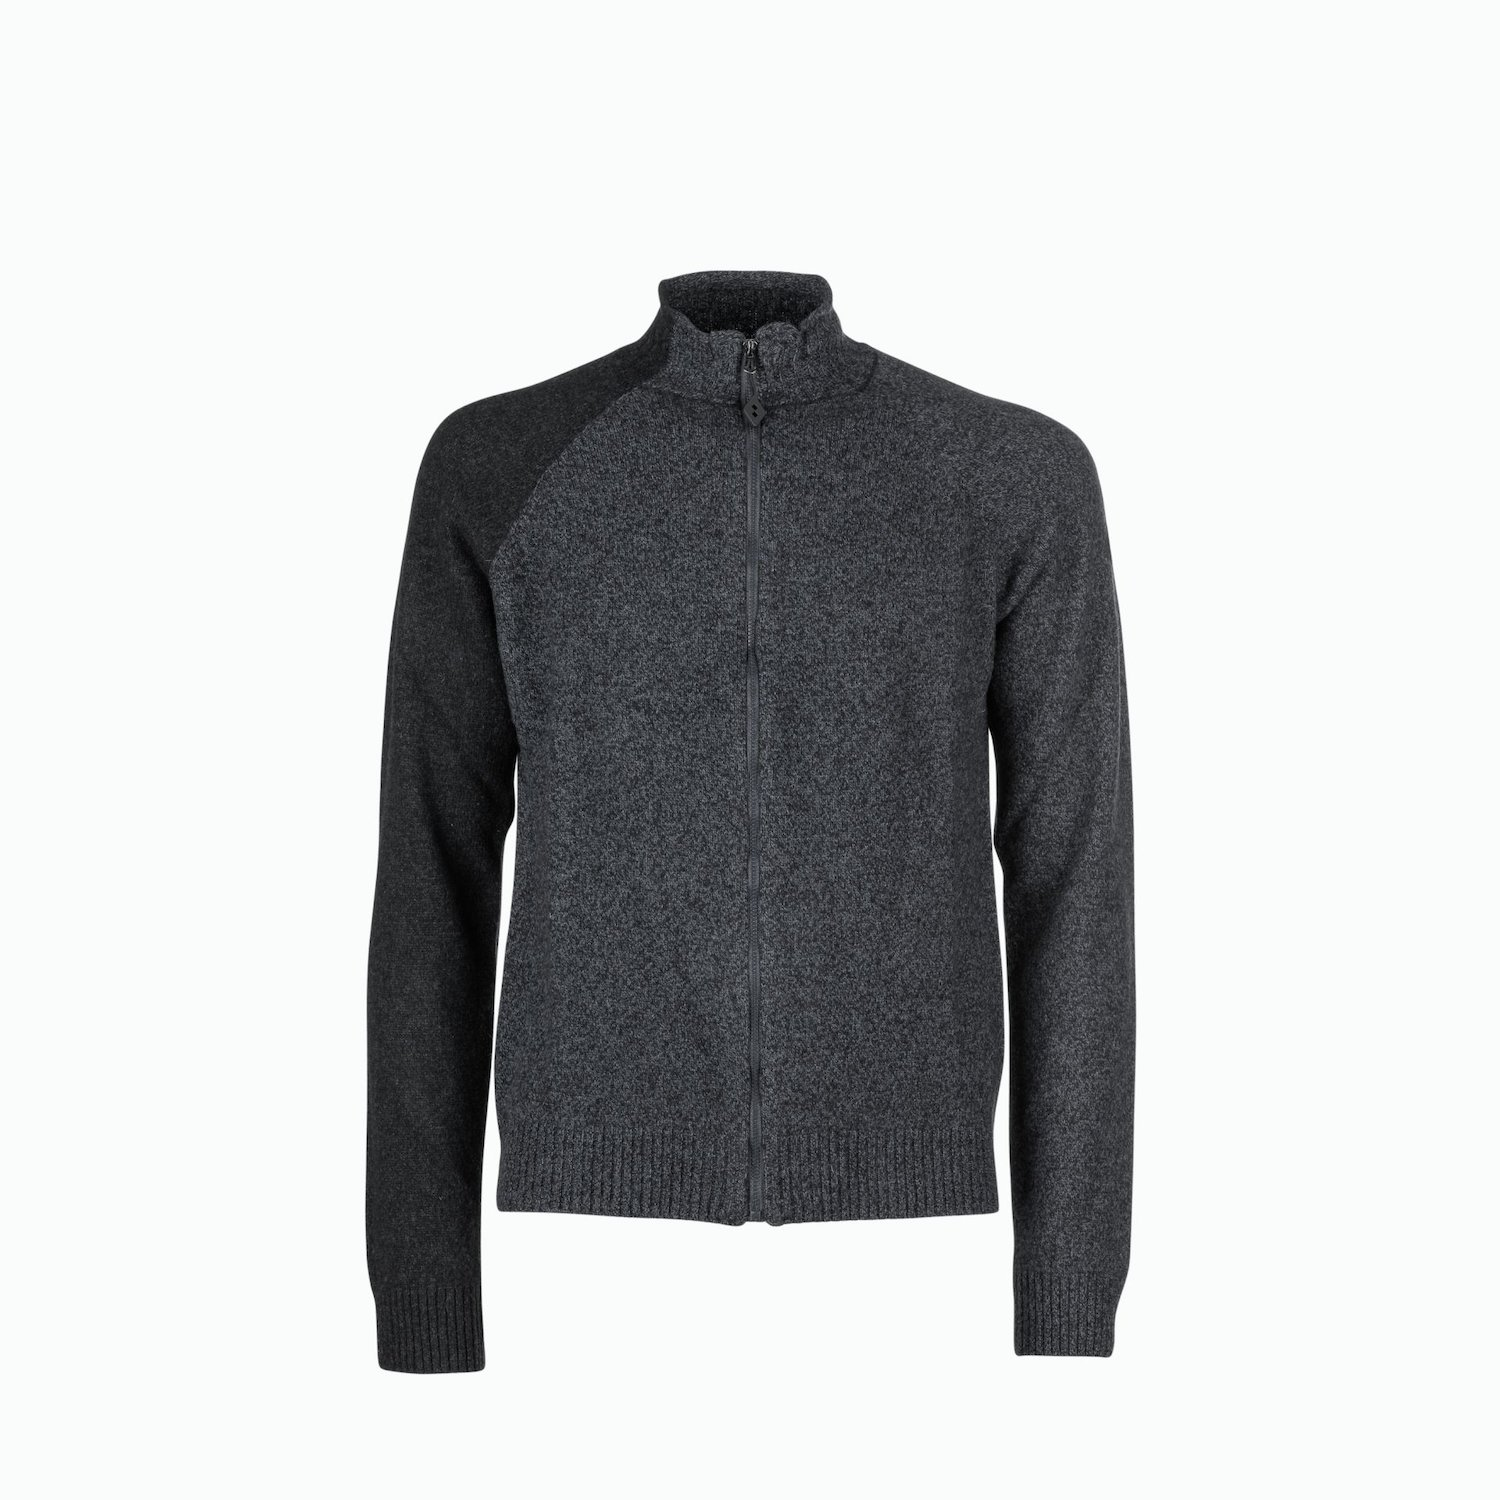 D53 Cardigan - Heather Charcoal